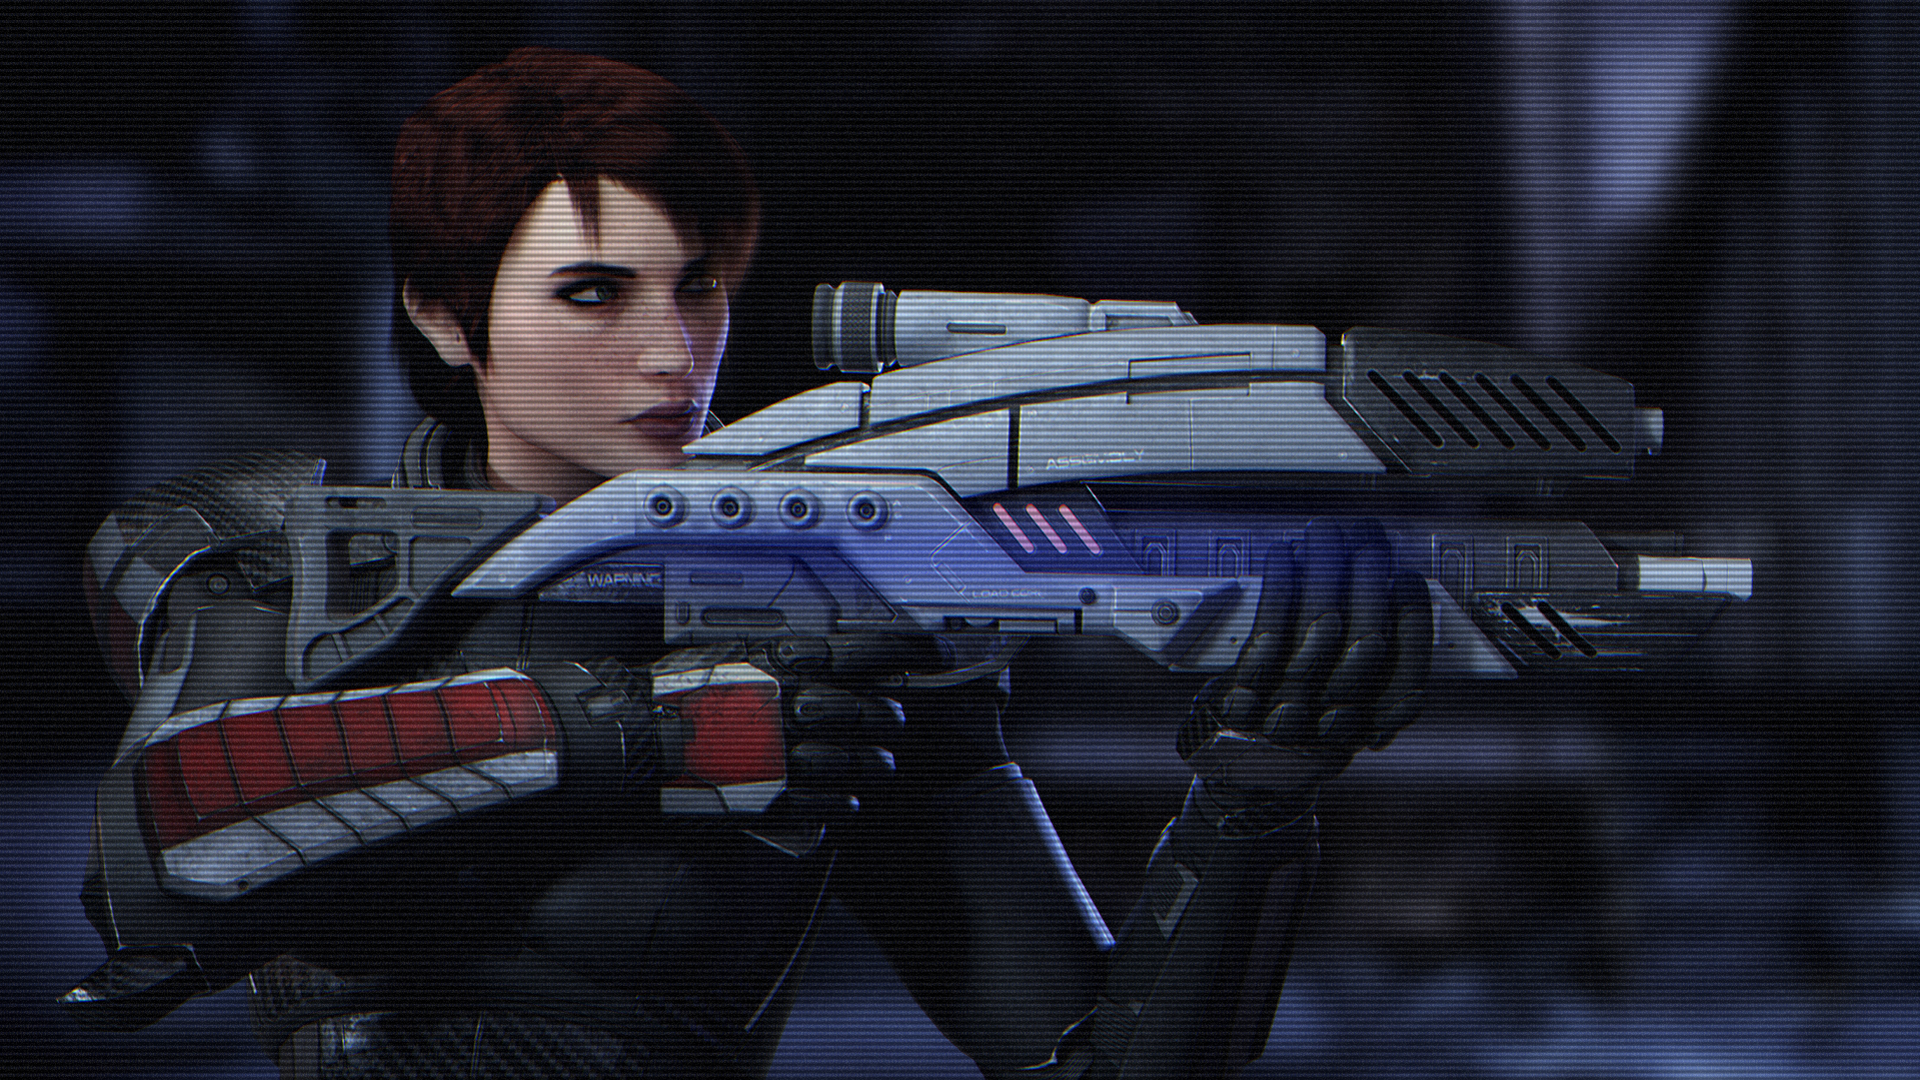 Mass Effect 3 Priority Earth Overhaul mod is here to fix the game's ending